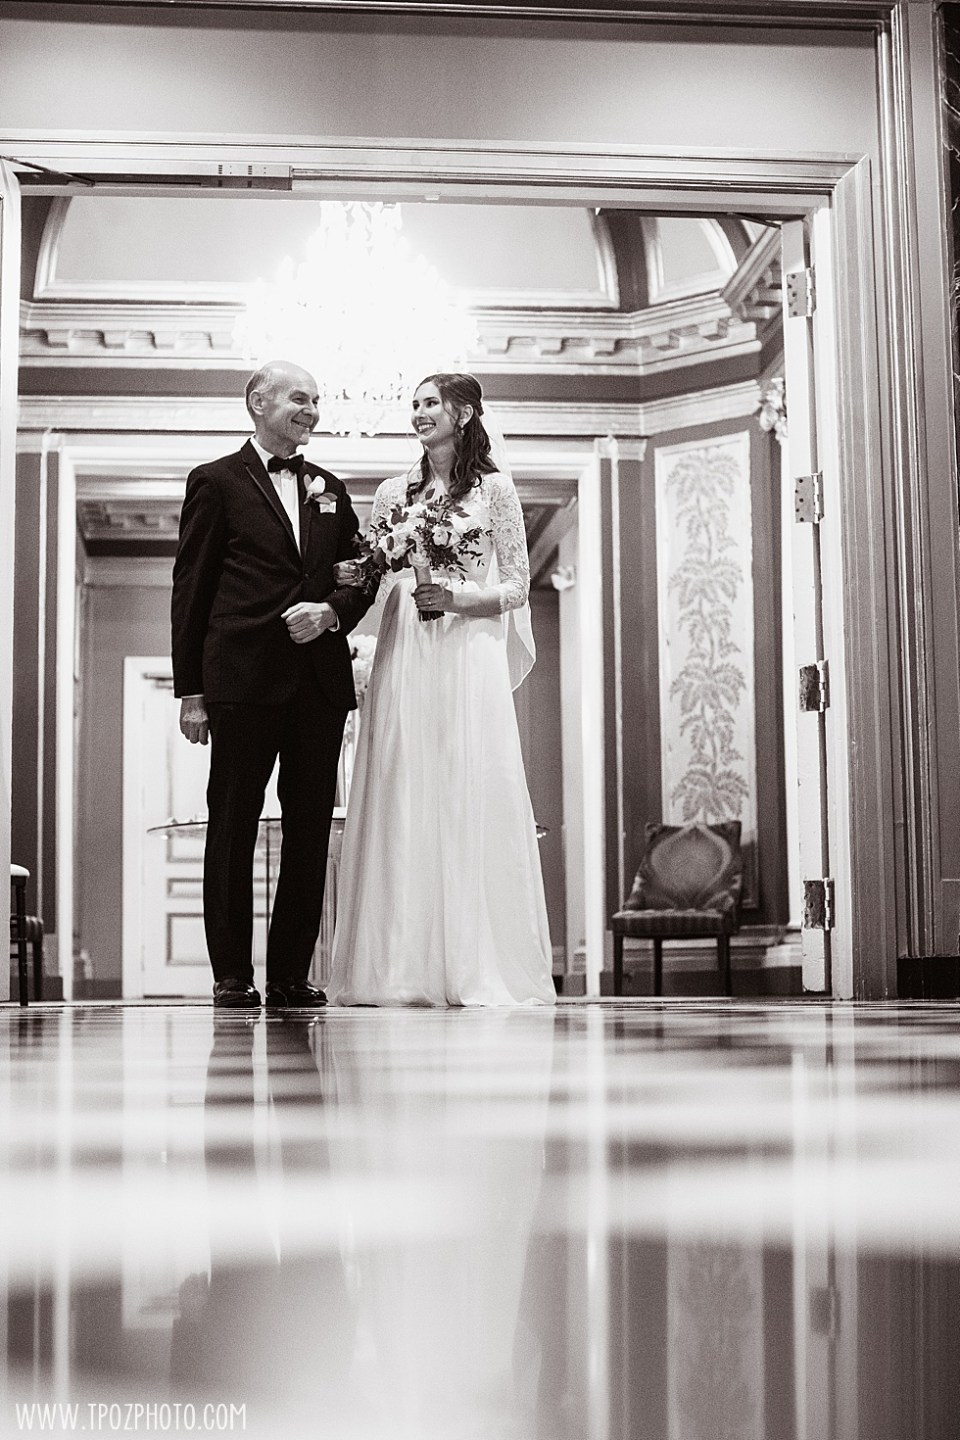 Last moments with Dad before walking down the aisle  •  tPoz Photography •  www.tpozphoto.com